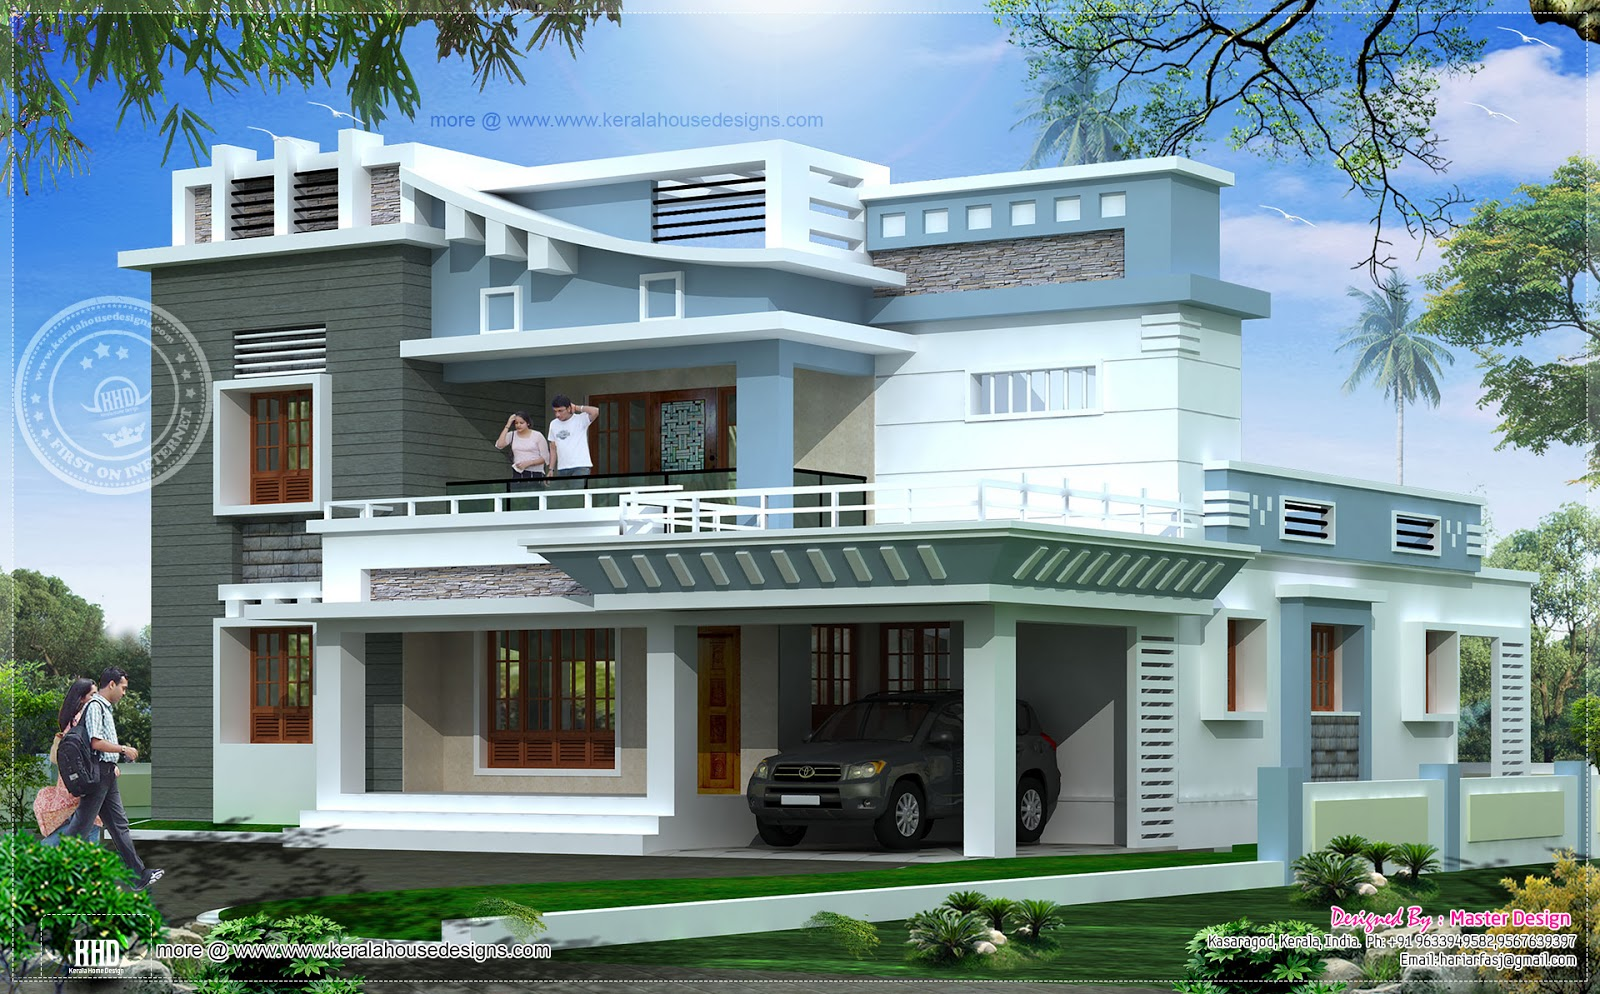 2547 square feet exterior home elevation house design plans Best home designs of 2014